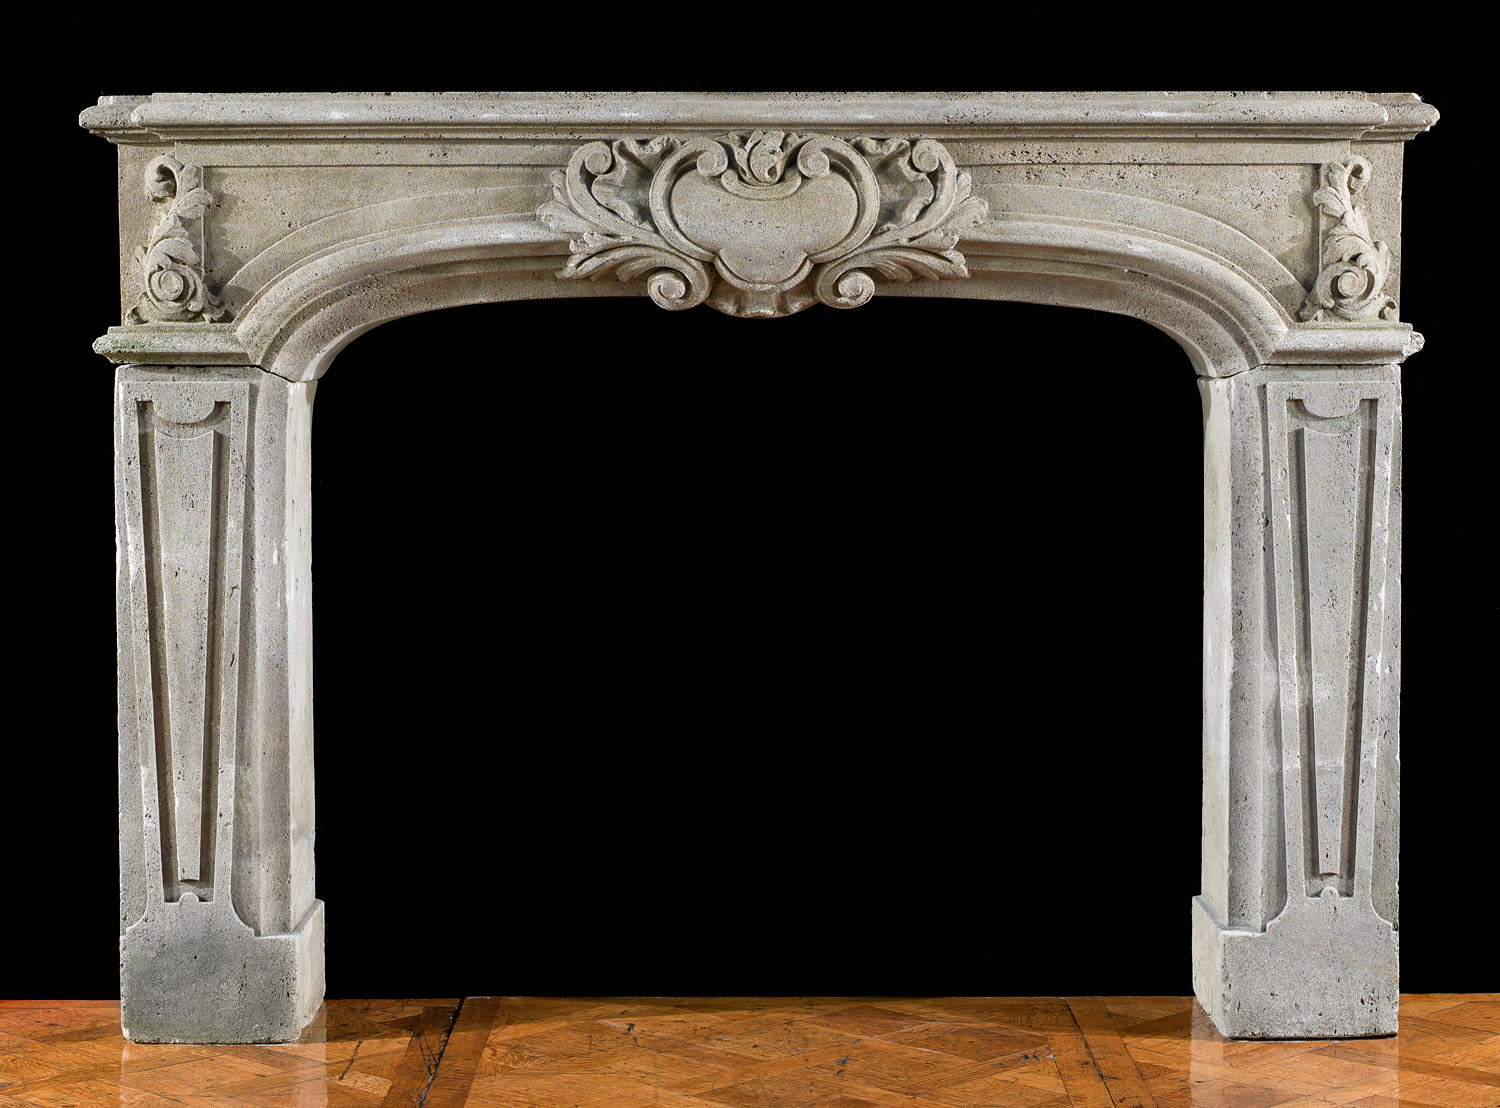 Antique Stone Baroque Fireplace Mantel Westland Antiques